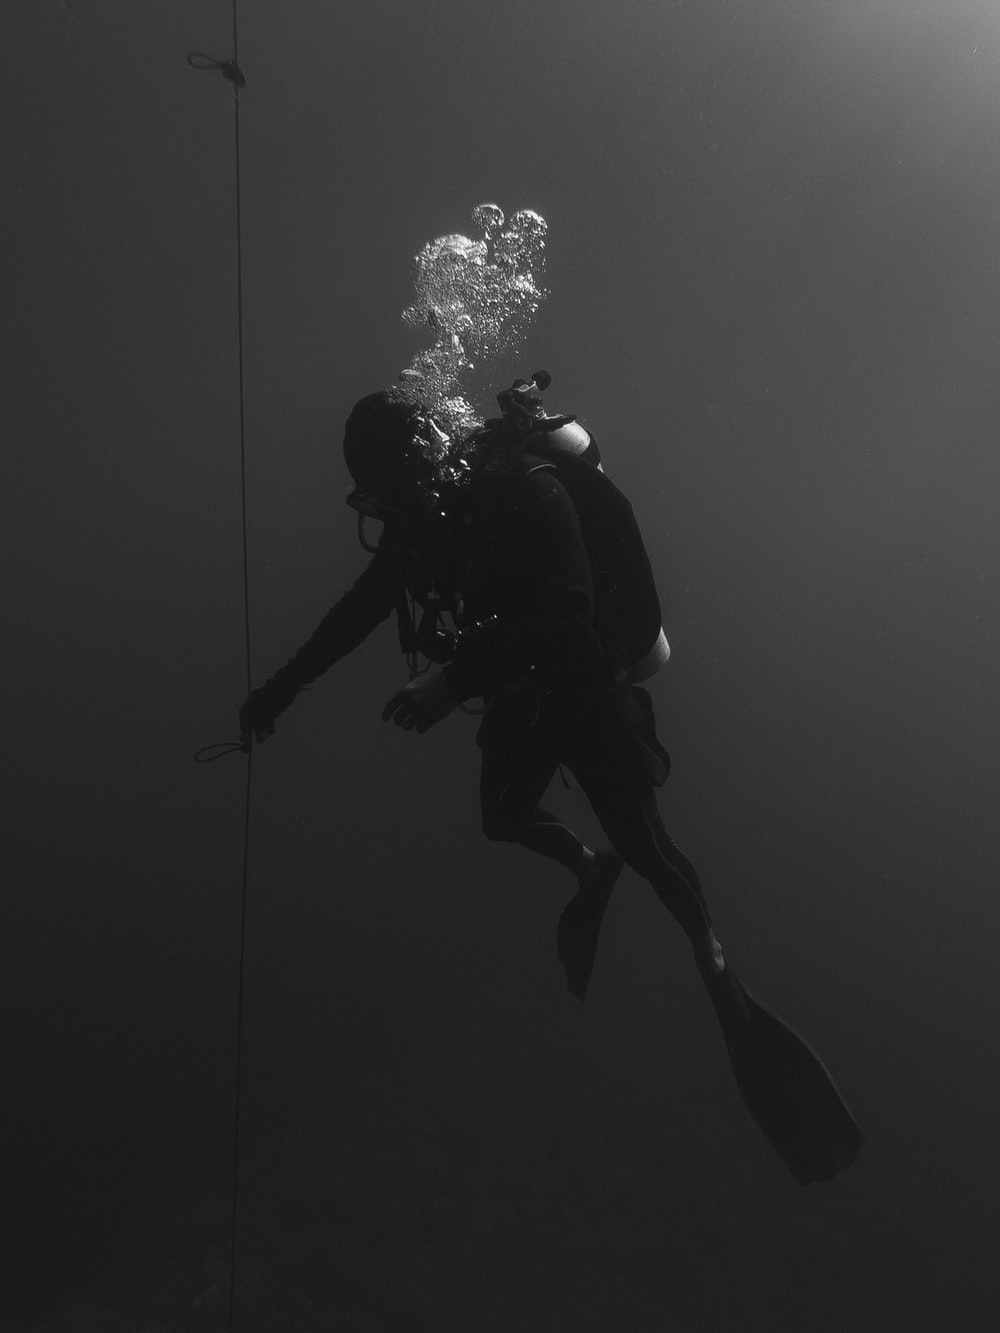 person under water with snorkling equipment